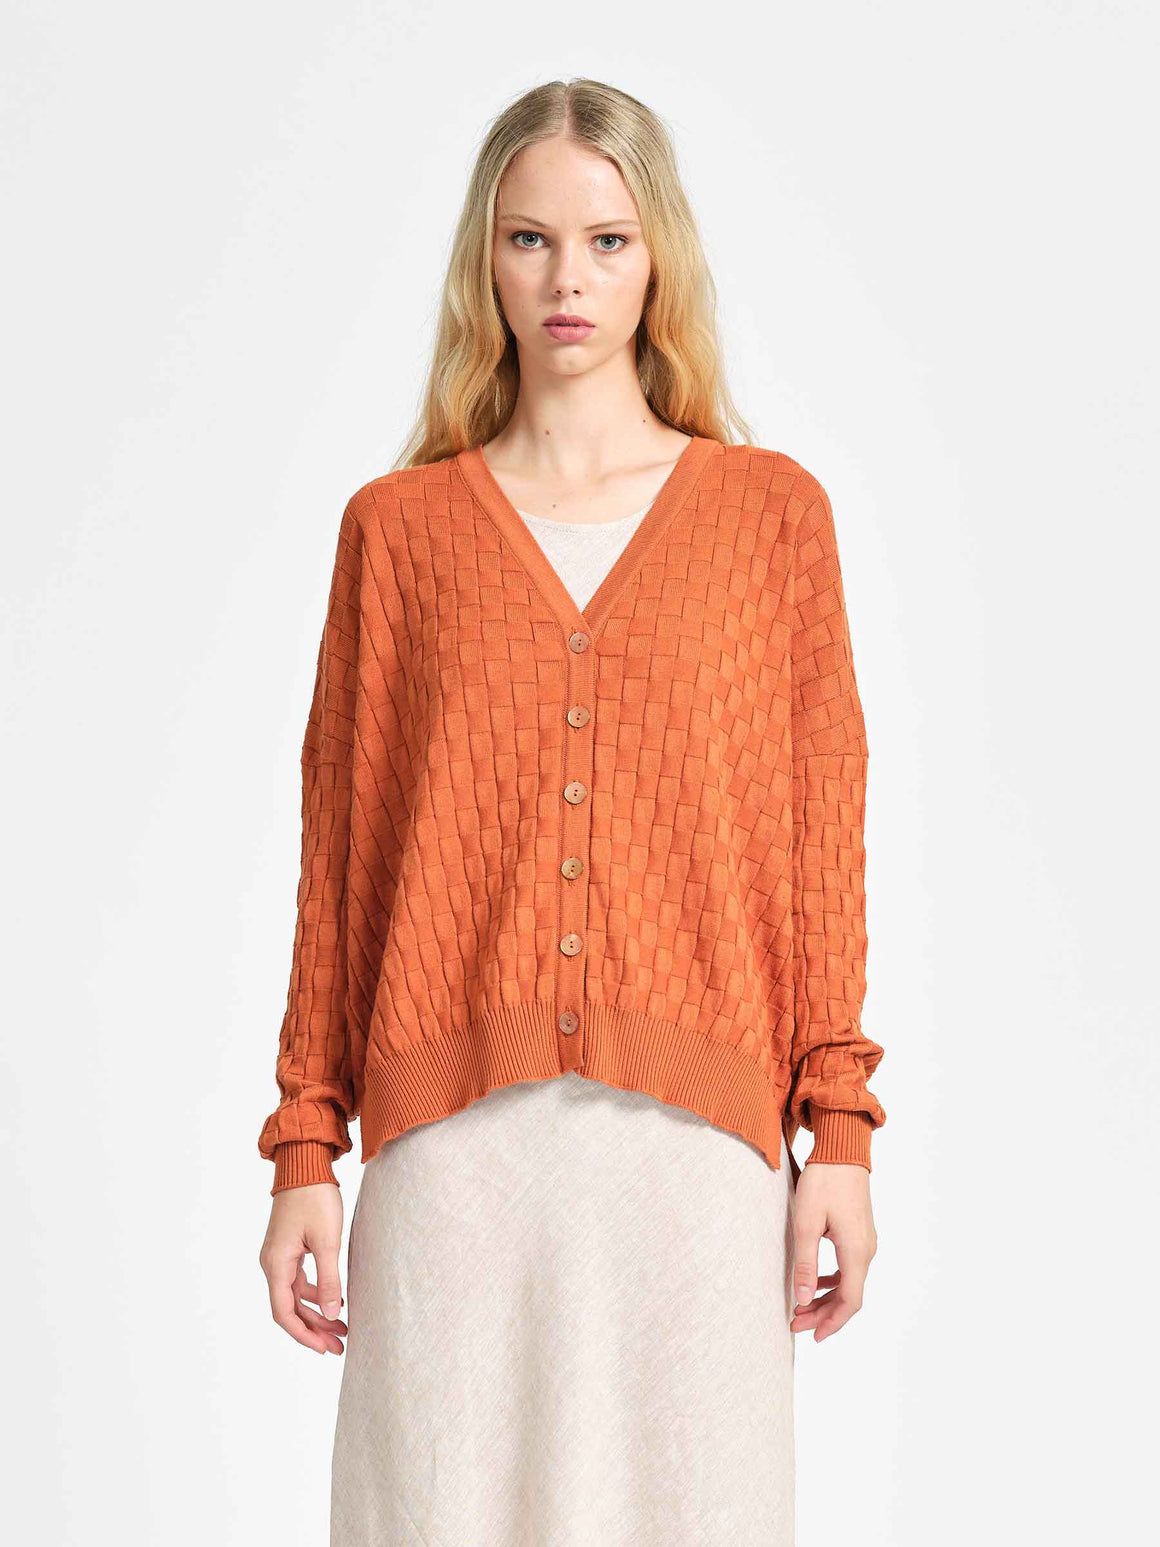 From Boston Cardigan - Persimmon